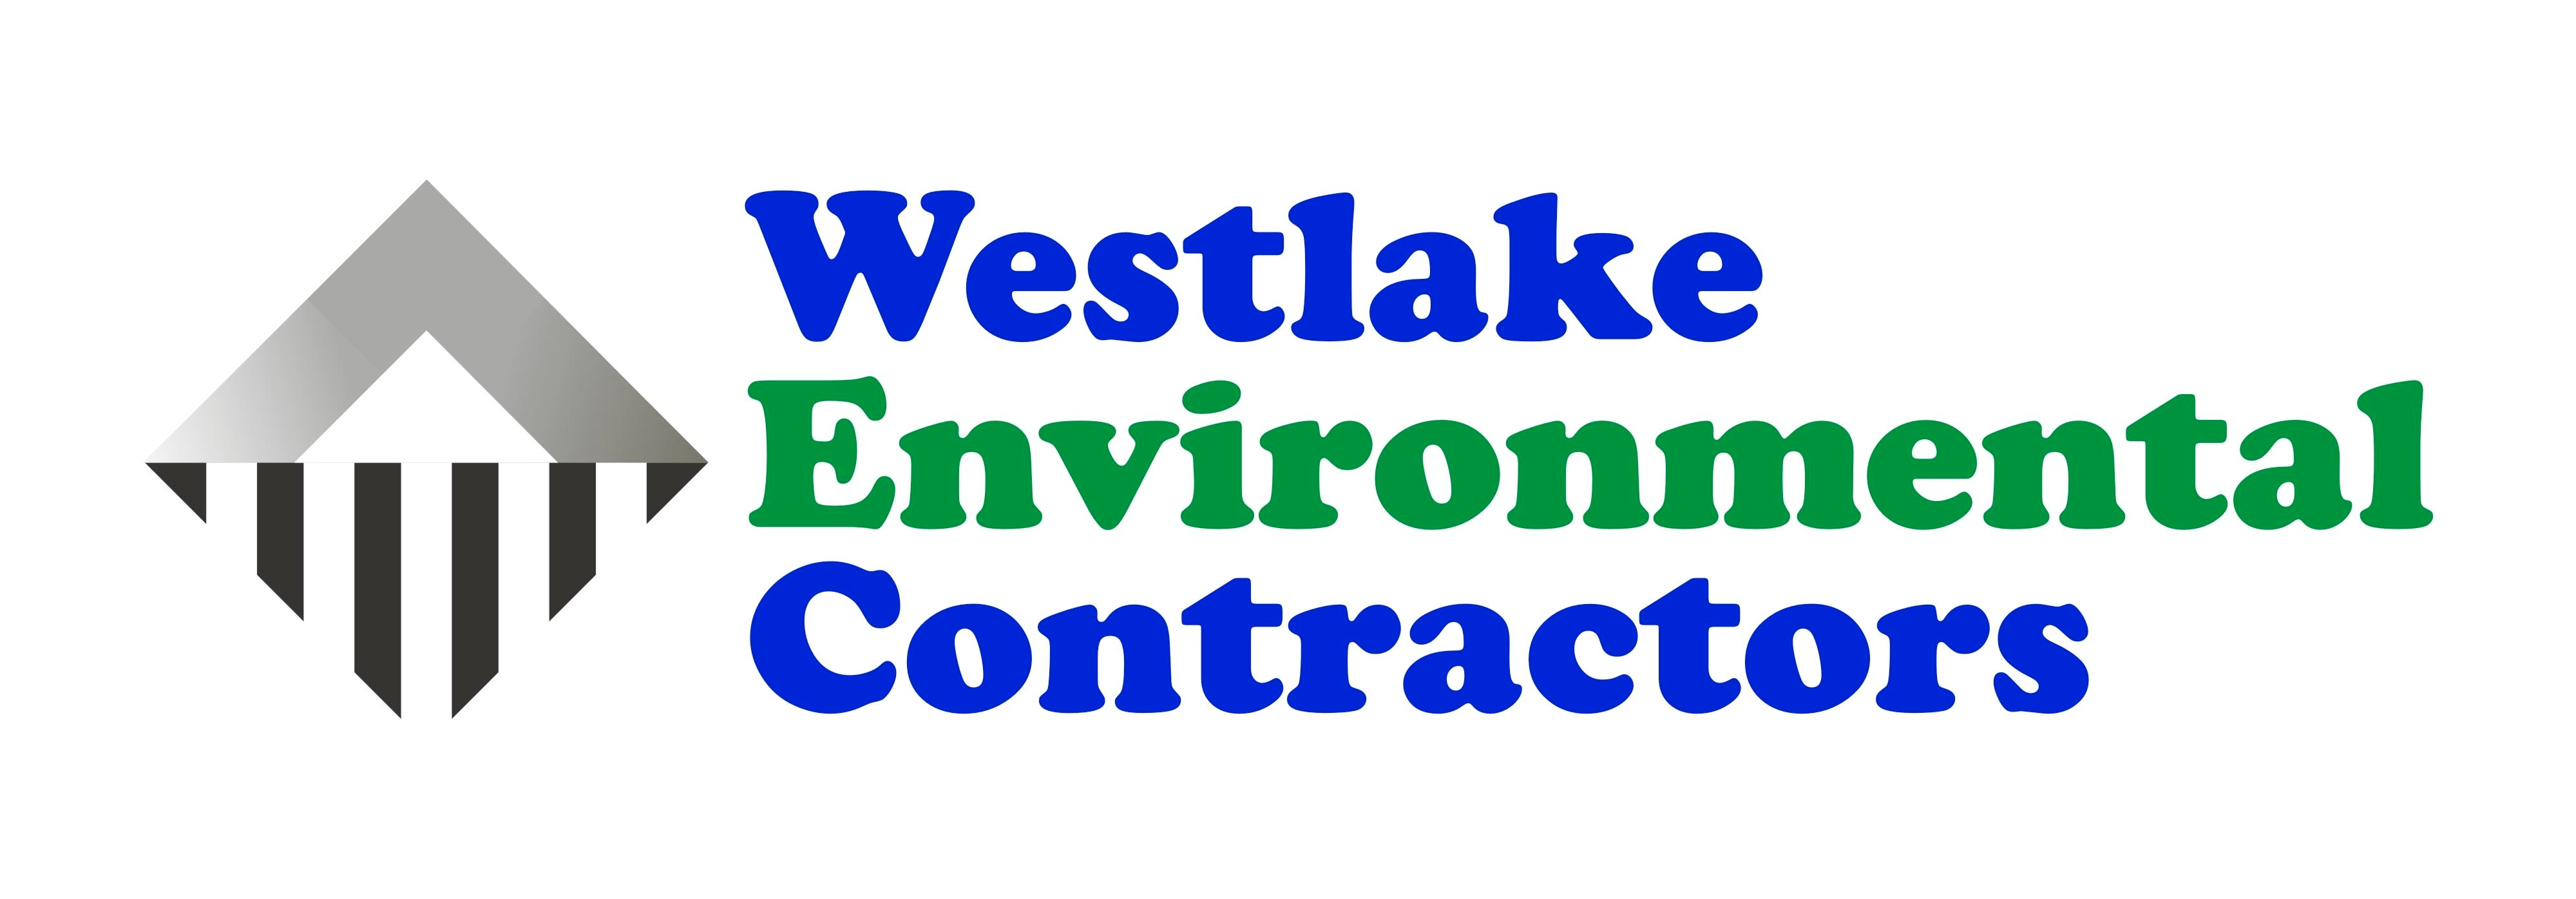 Westlake environmental contractors coupons near me in for Local builders near me